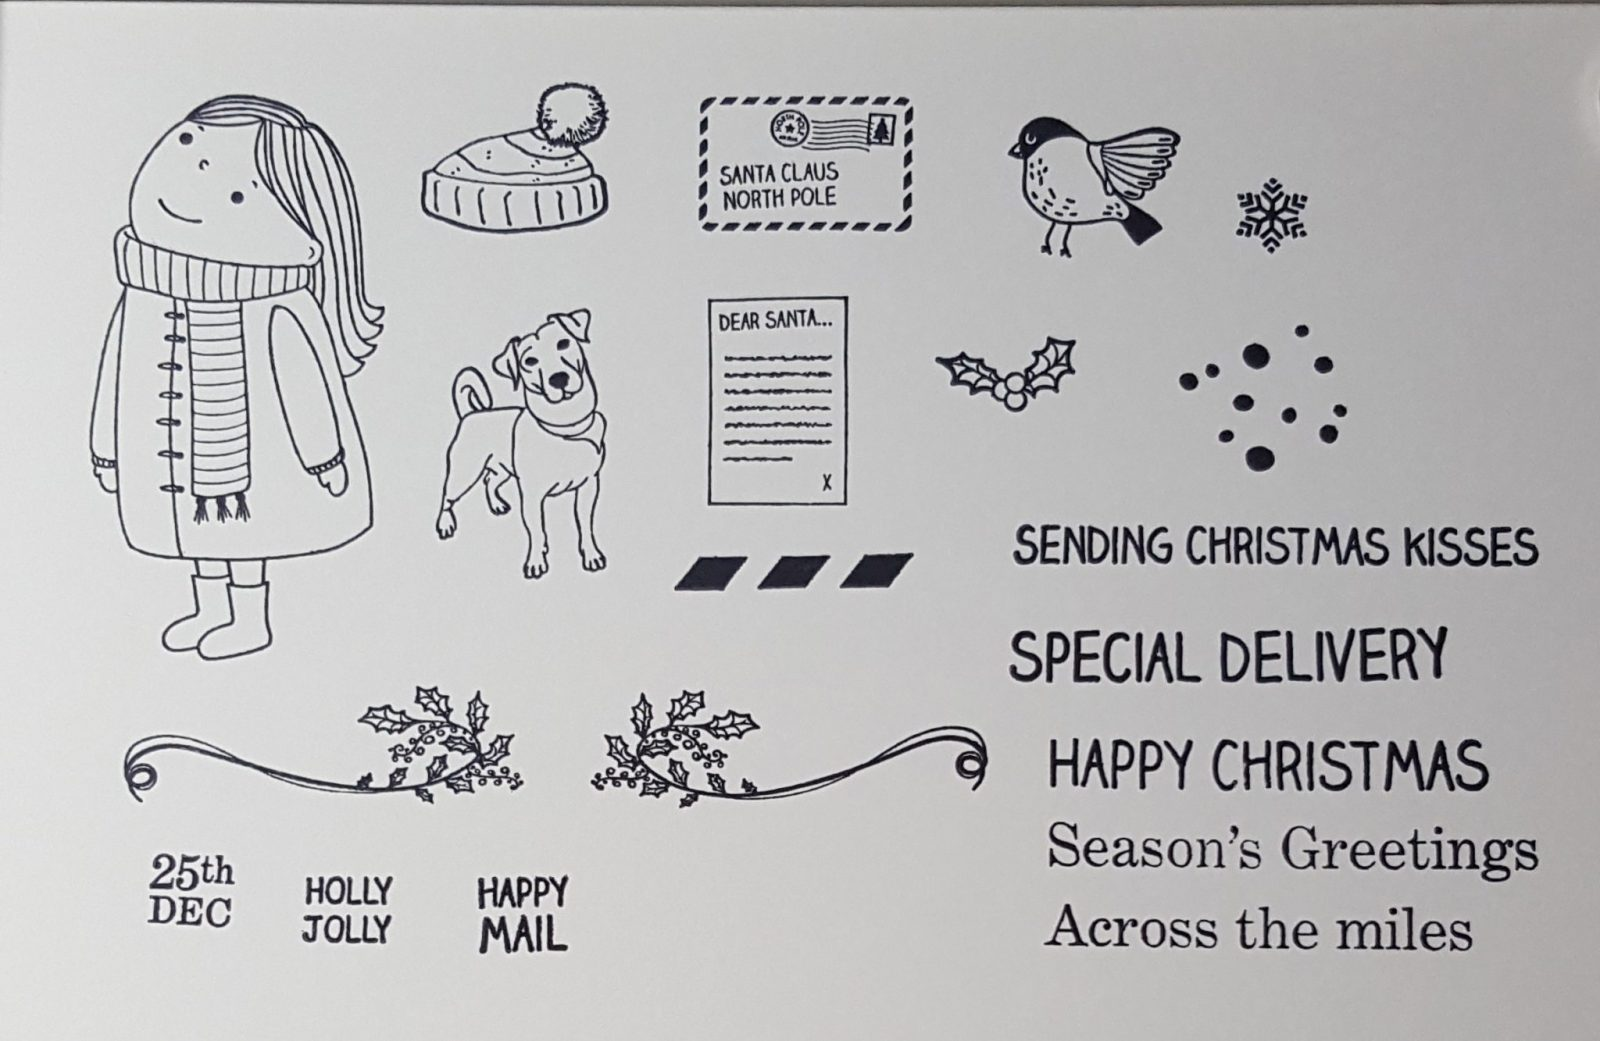 Sending Christmas Wishes Stamped